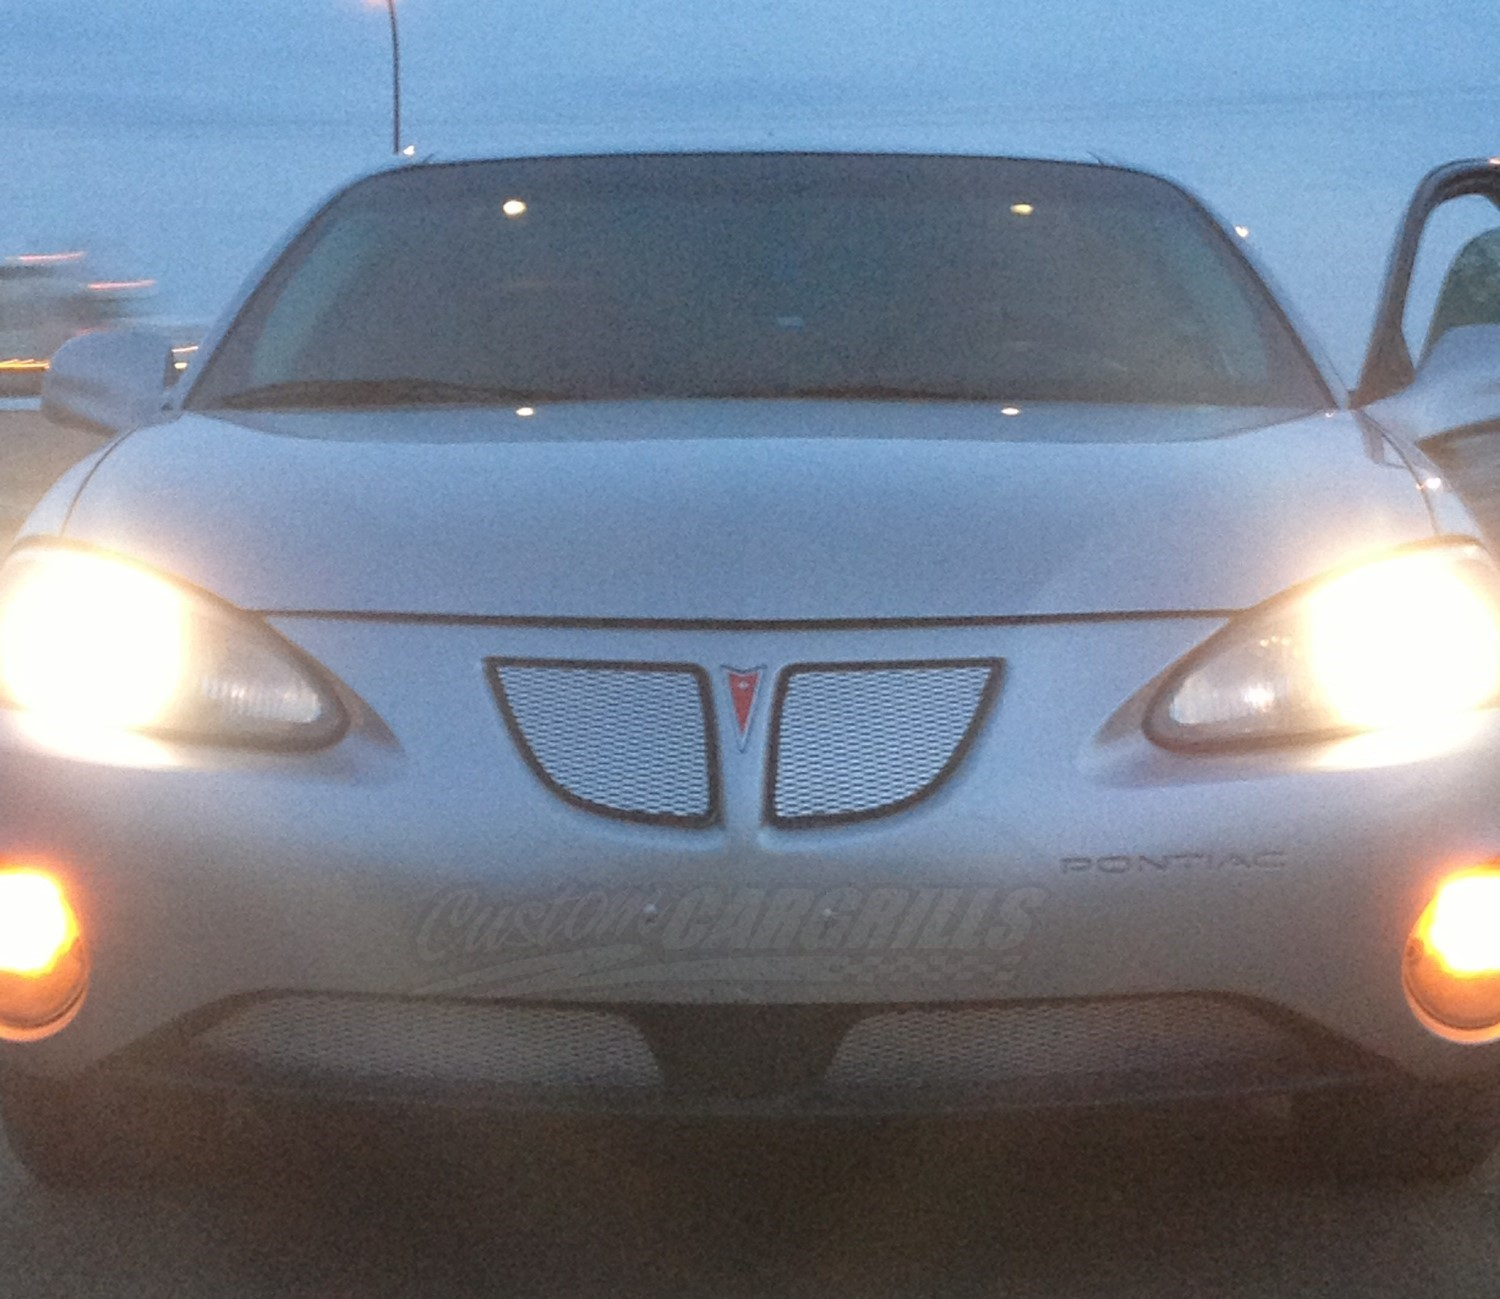 2004 08 Pontiac Grand Prix Mesh Grill Insert Kit By